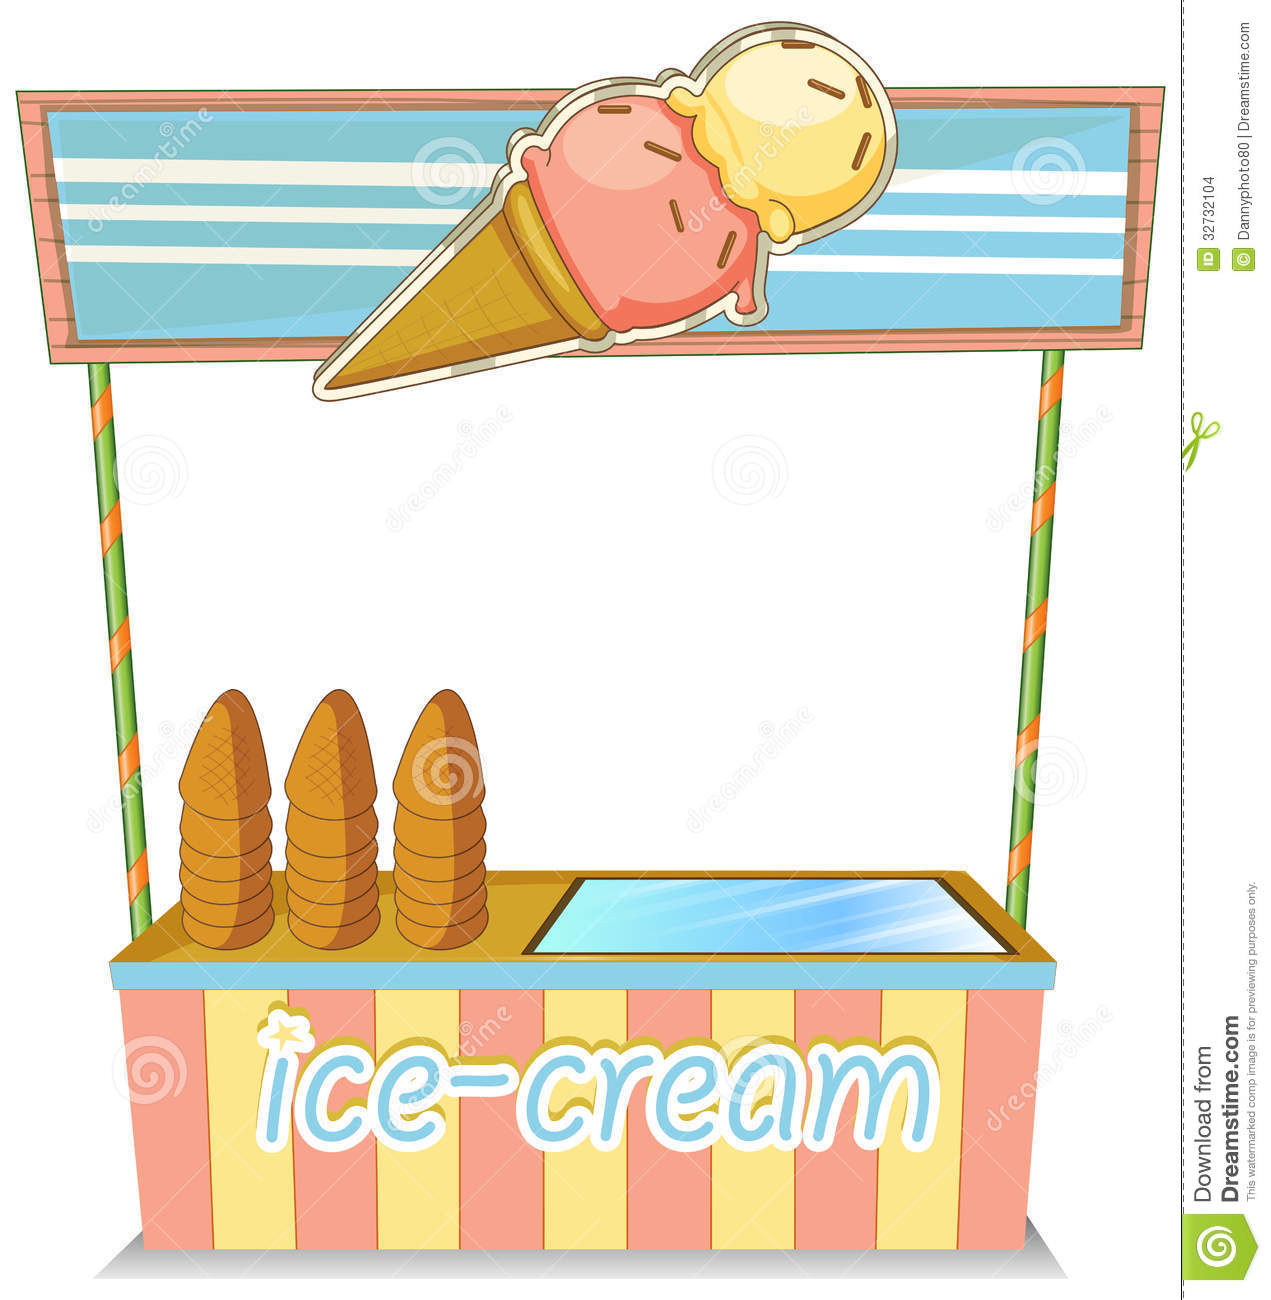 Illustration of a wooden icecream stand on a white background.